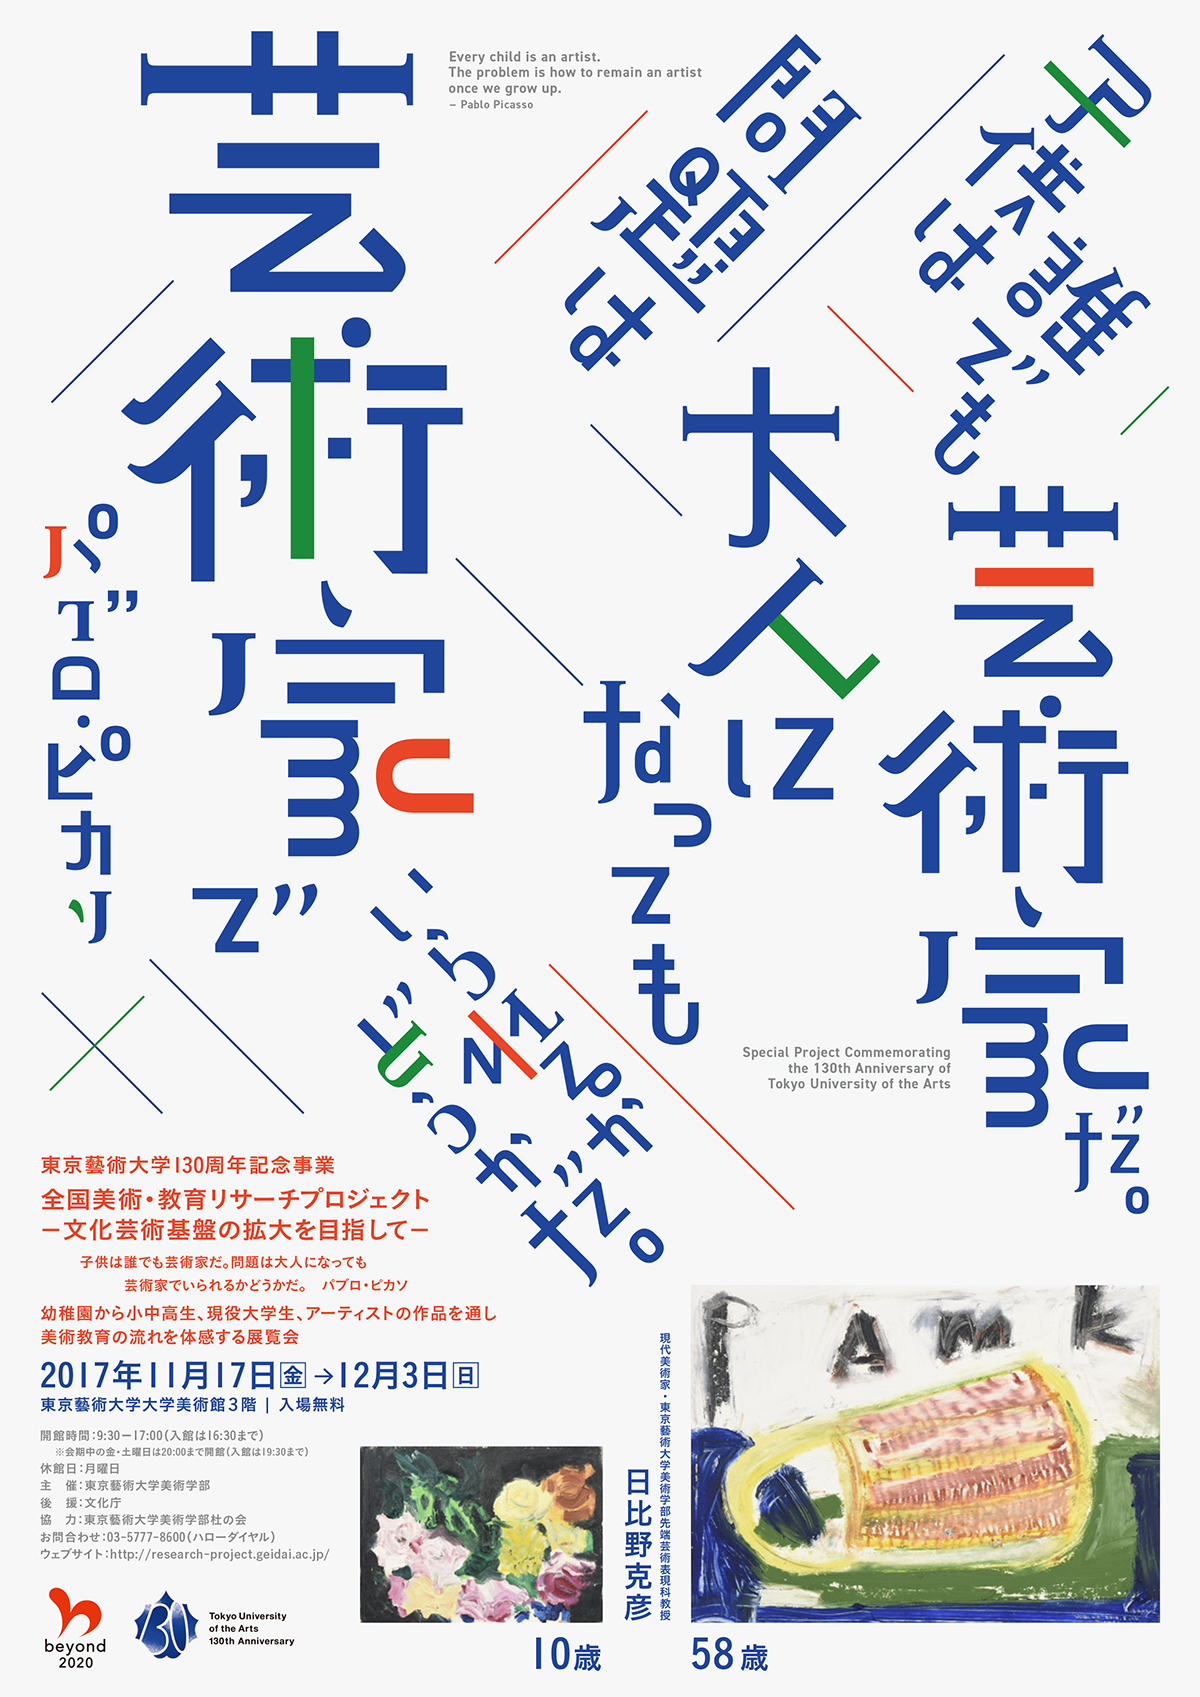 Special Project Commemorating the 130th Anniversary of Tokyo University of the Arts